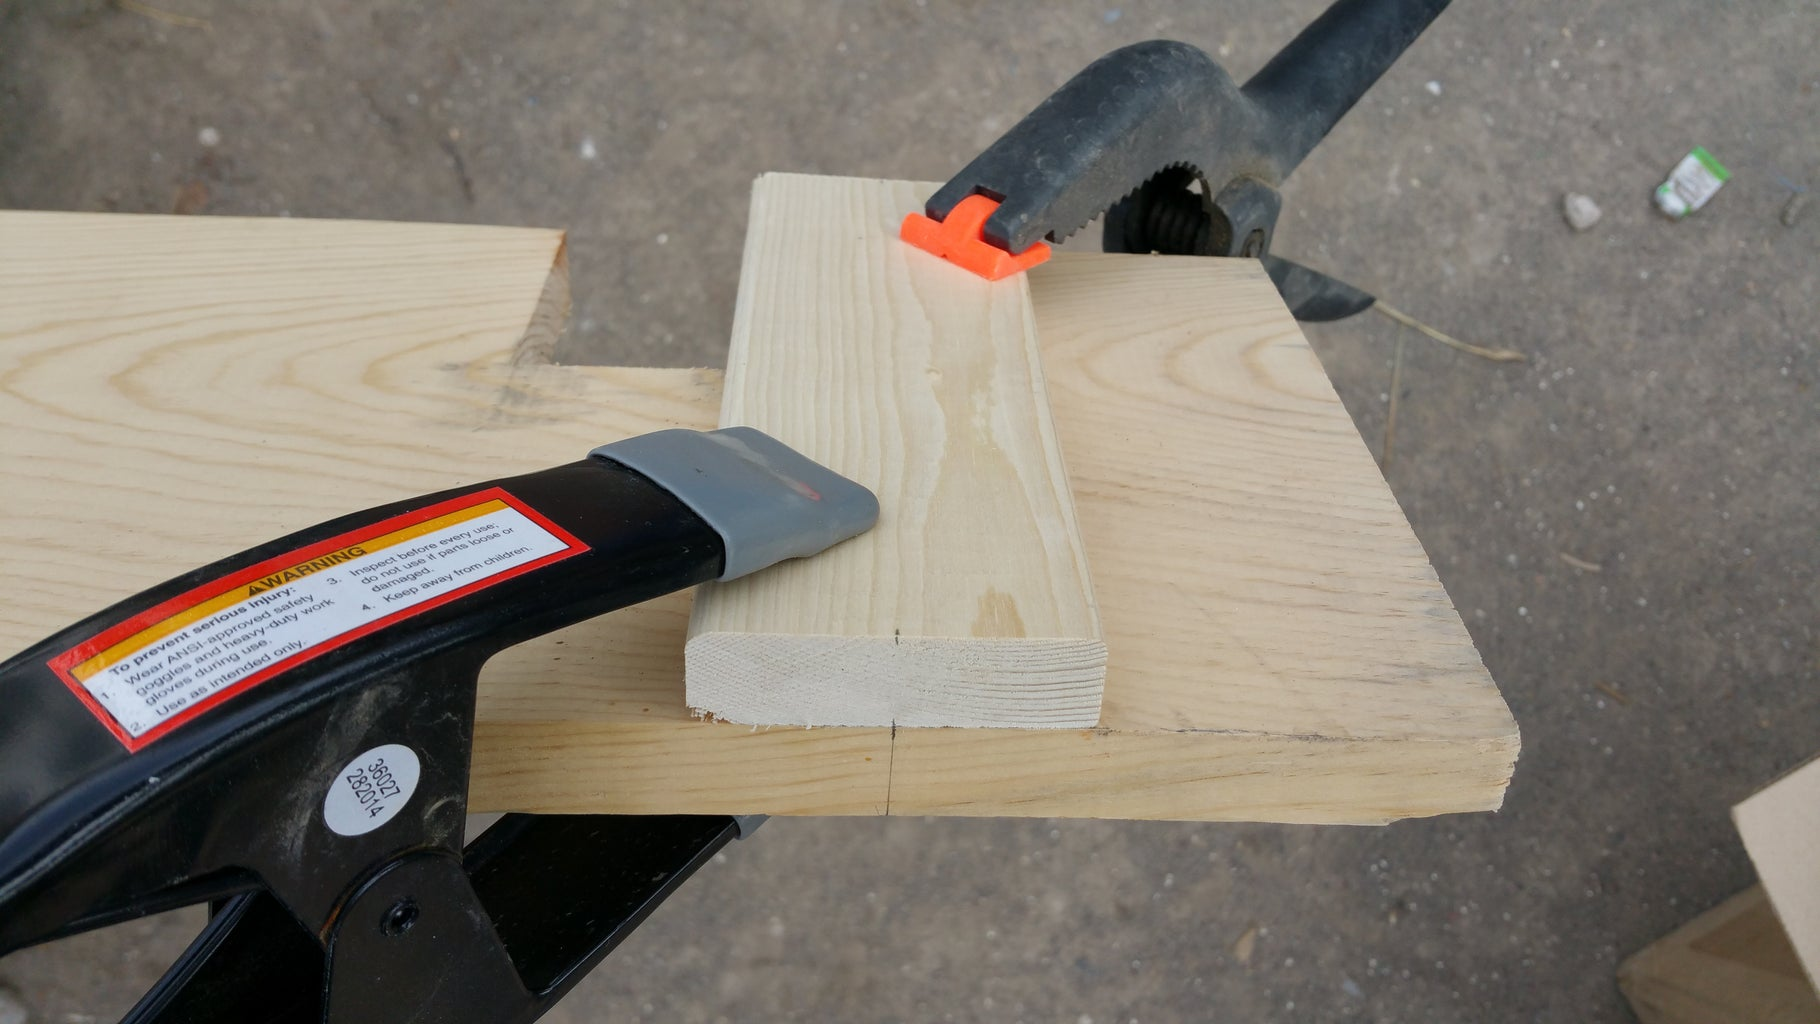 Clamping and Drilling for Shelf 1